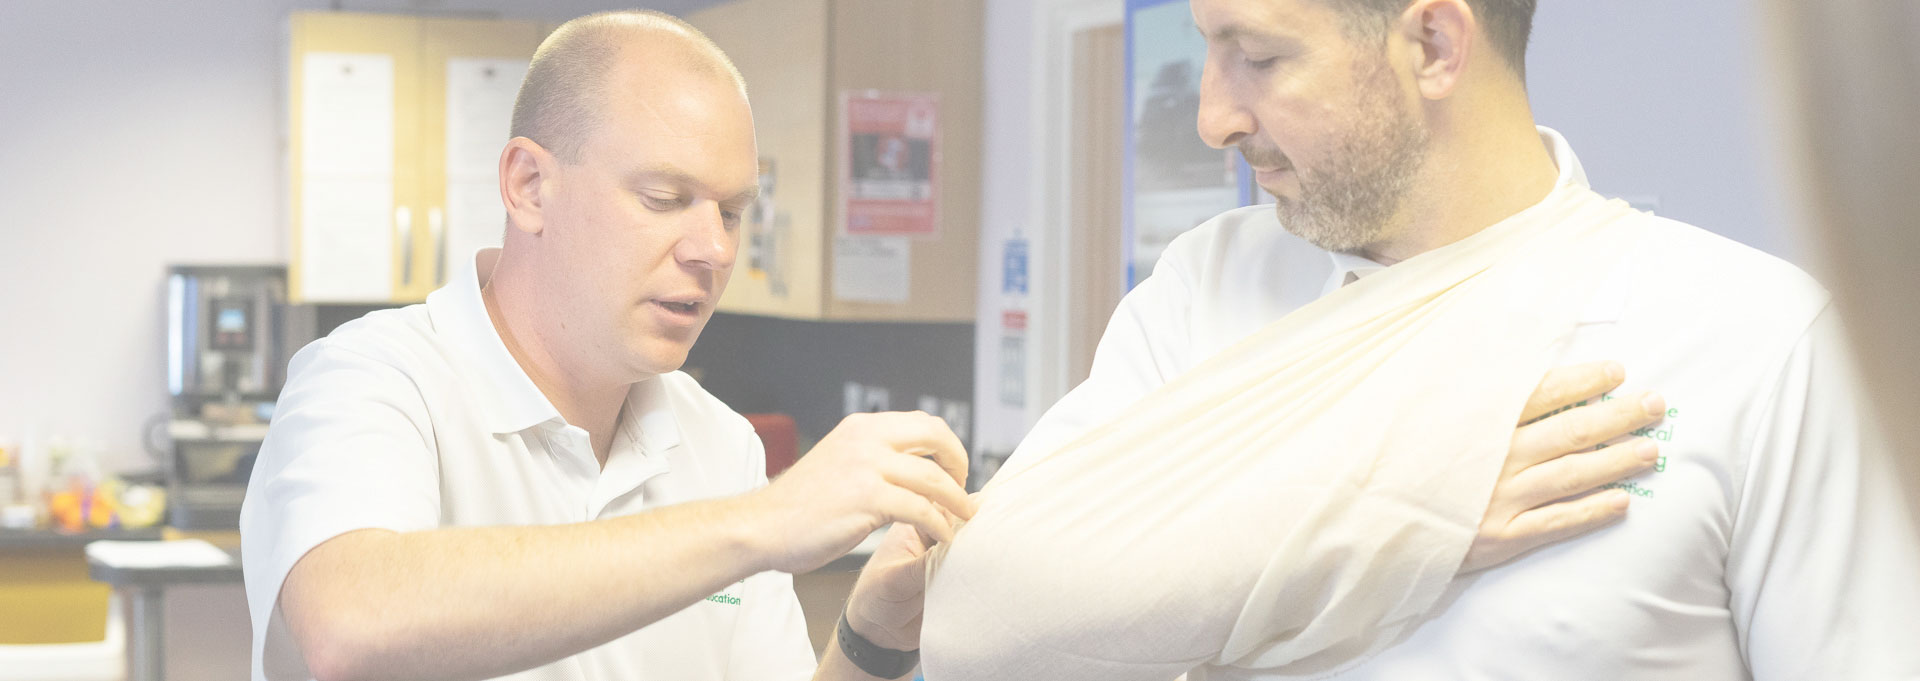 2 male first aid trainers demonstrating application of sling